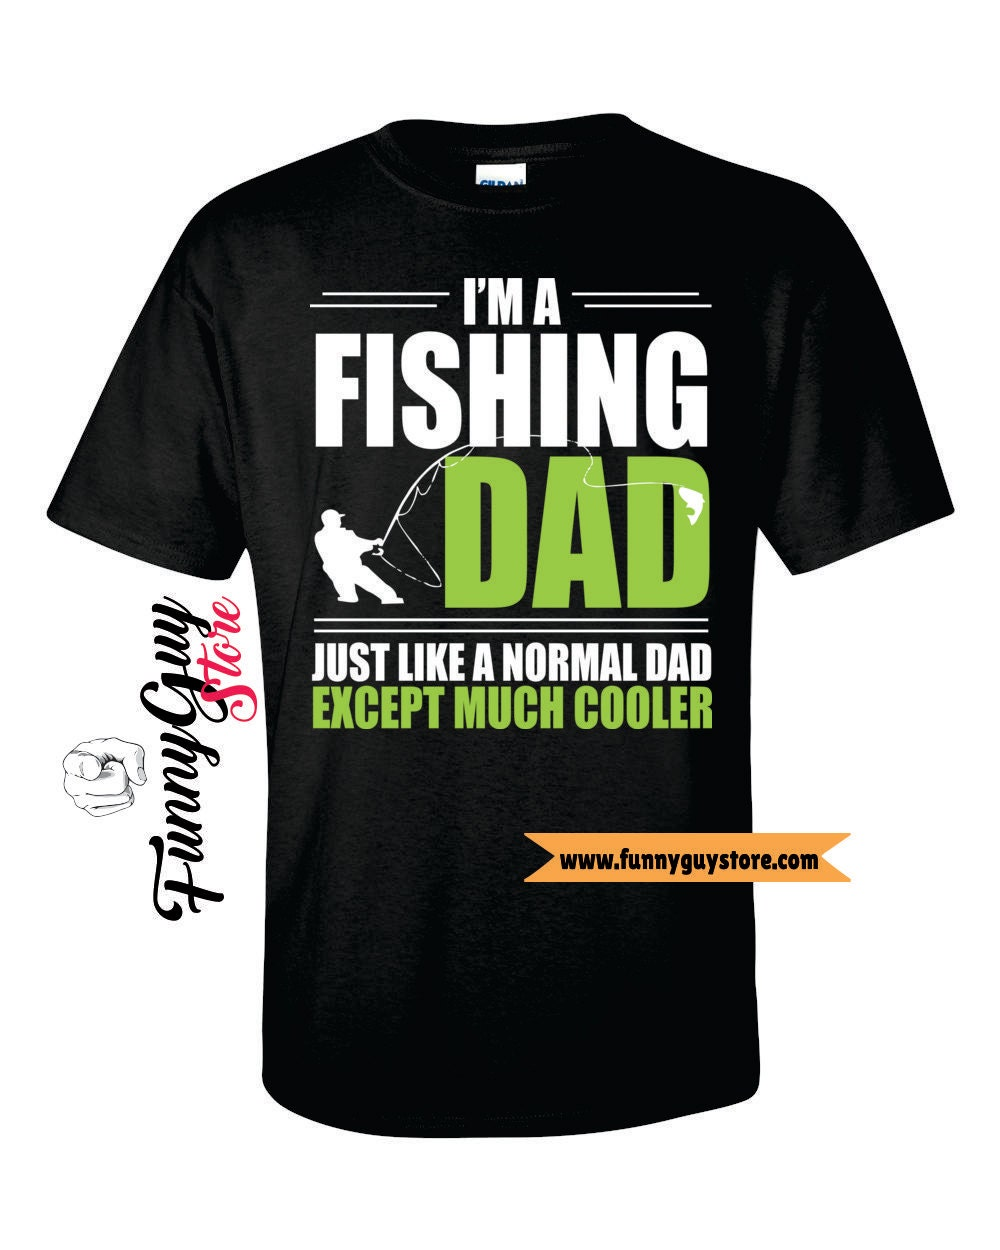 Funny Fishing Shirts For Her